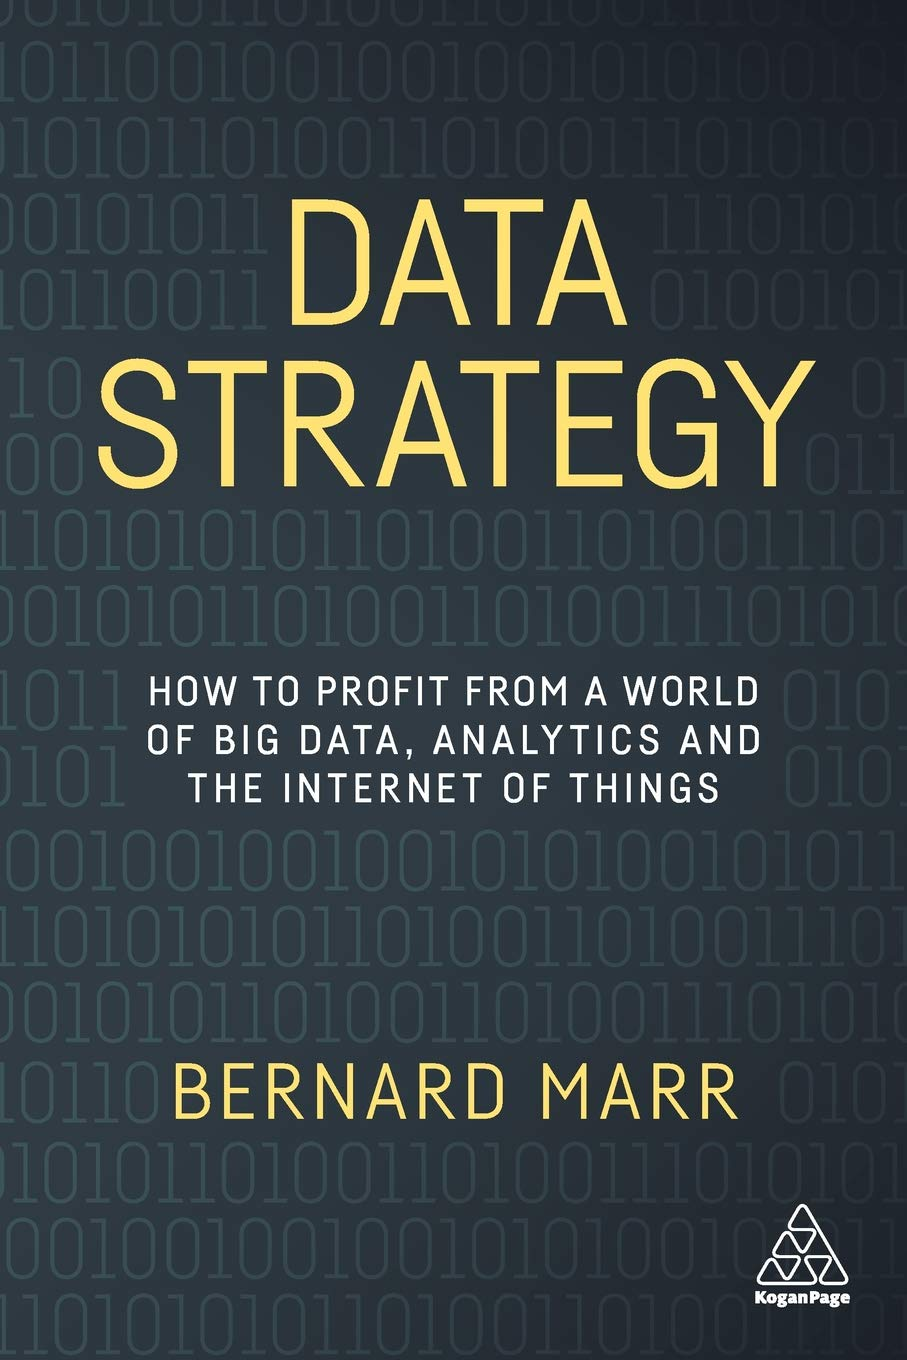 Data Strategy: How to Profit from a World of Big